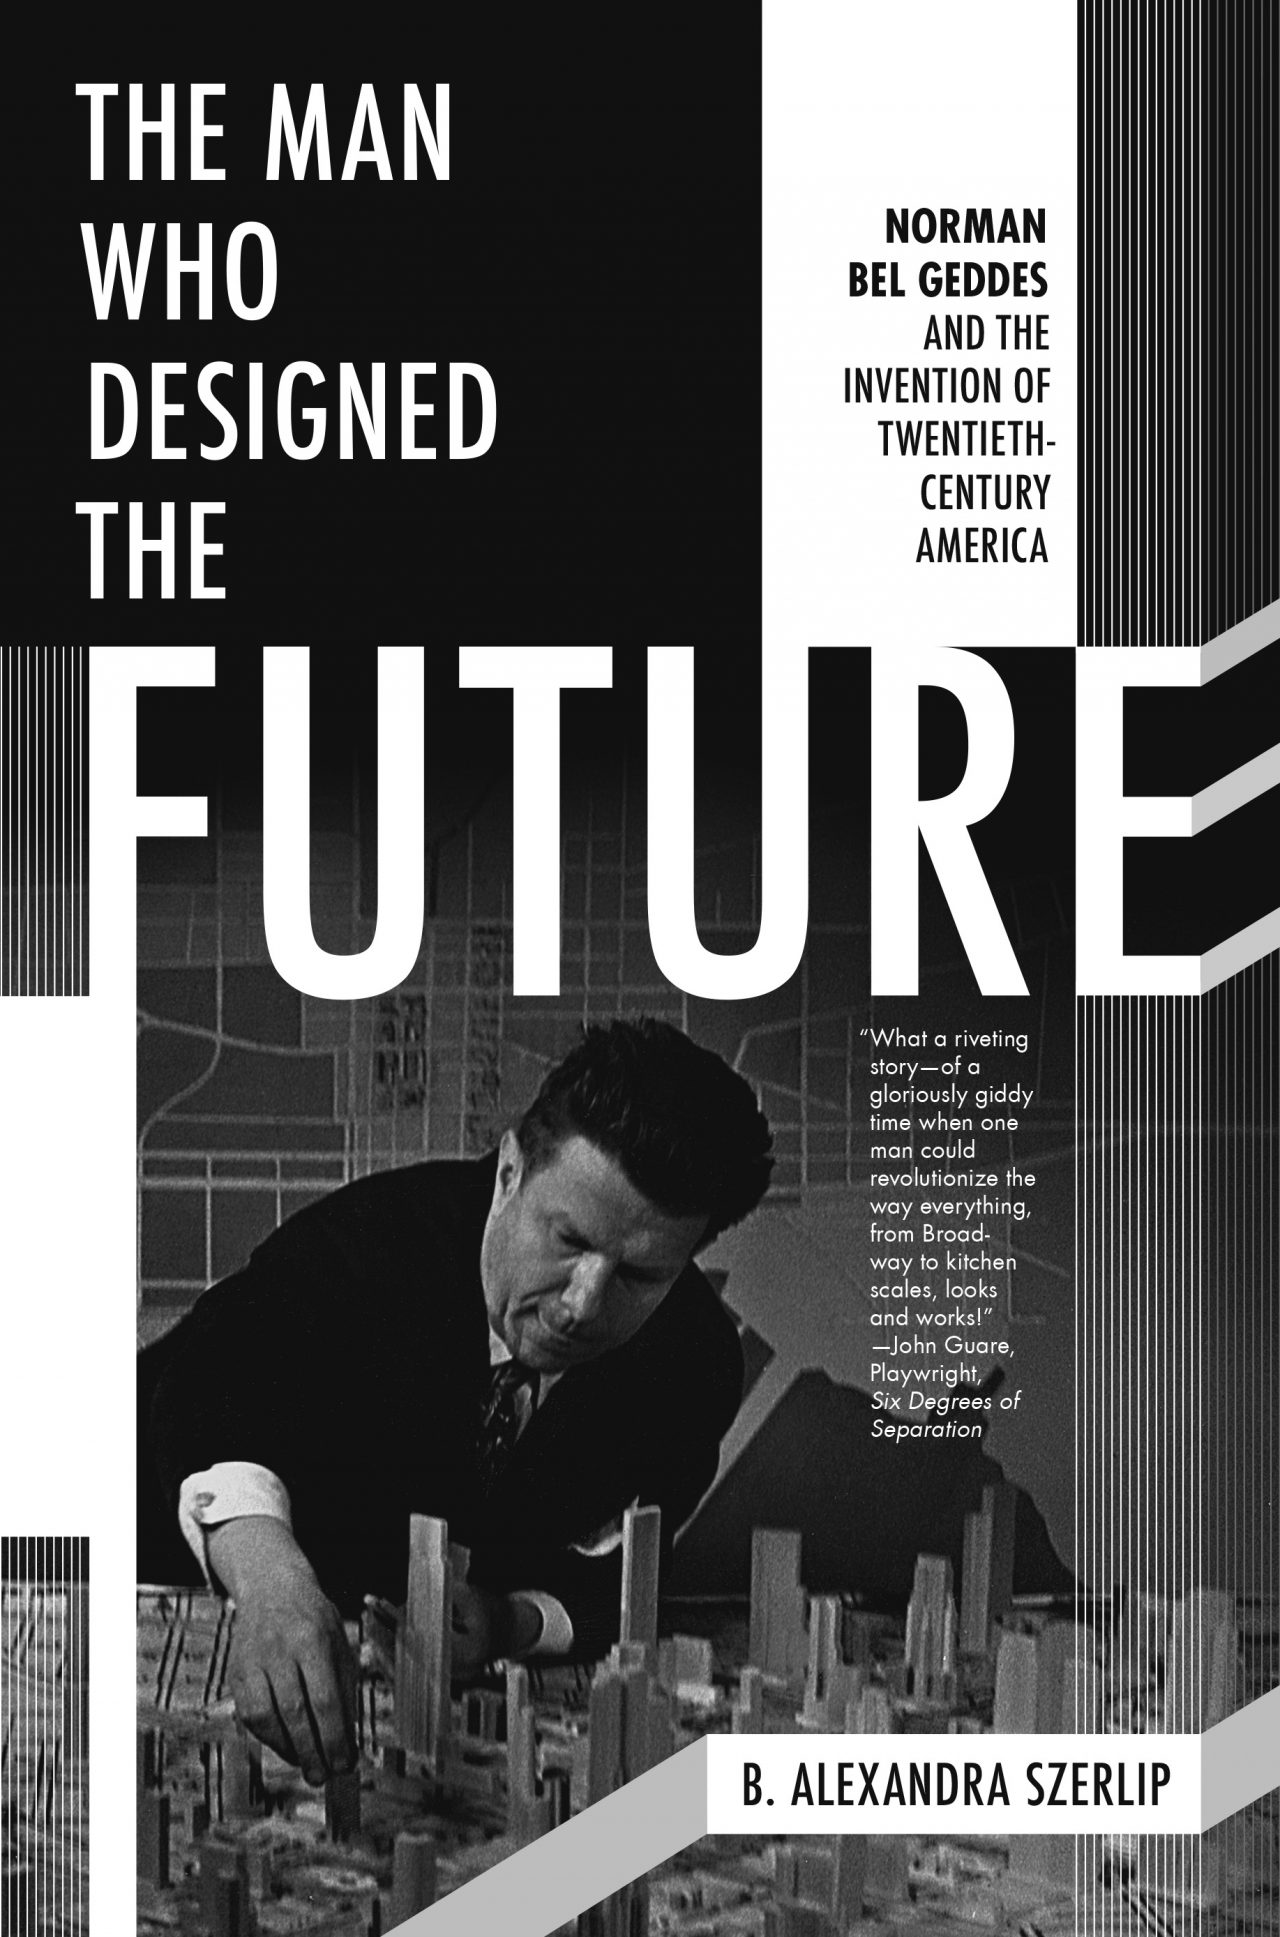 A Decade in the Making Norman Bel Geddes,the Divinci of Modernism, is Given His Due by Author B. Alexandra Szerlip